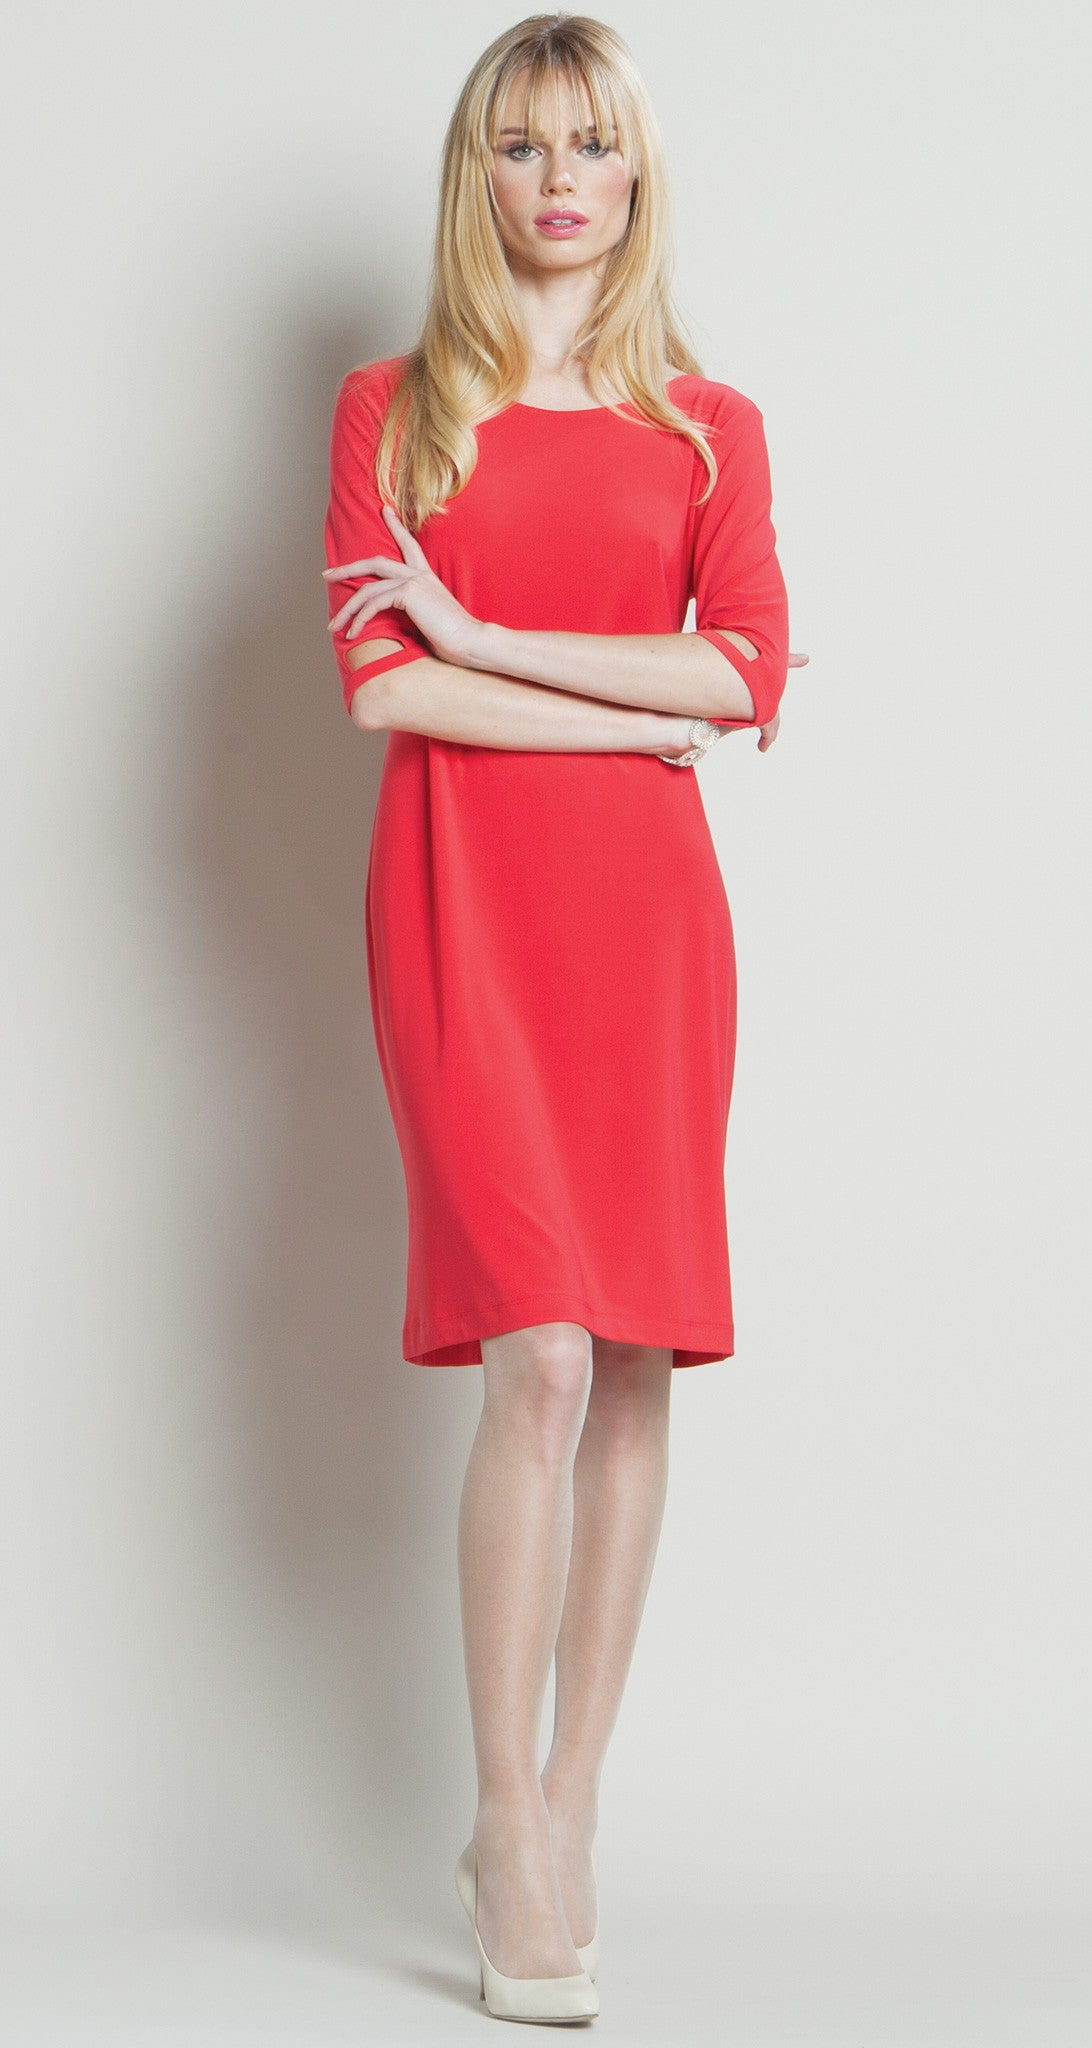 Modern Cut Out Dress - Coral